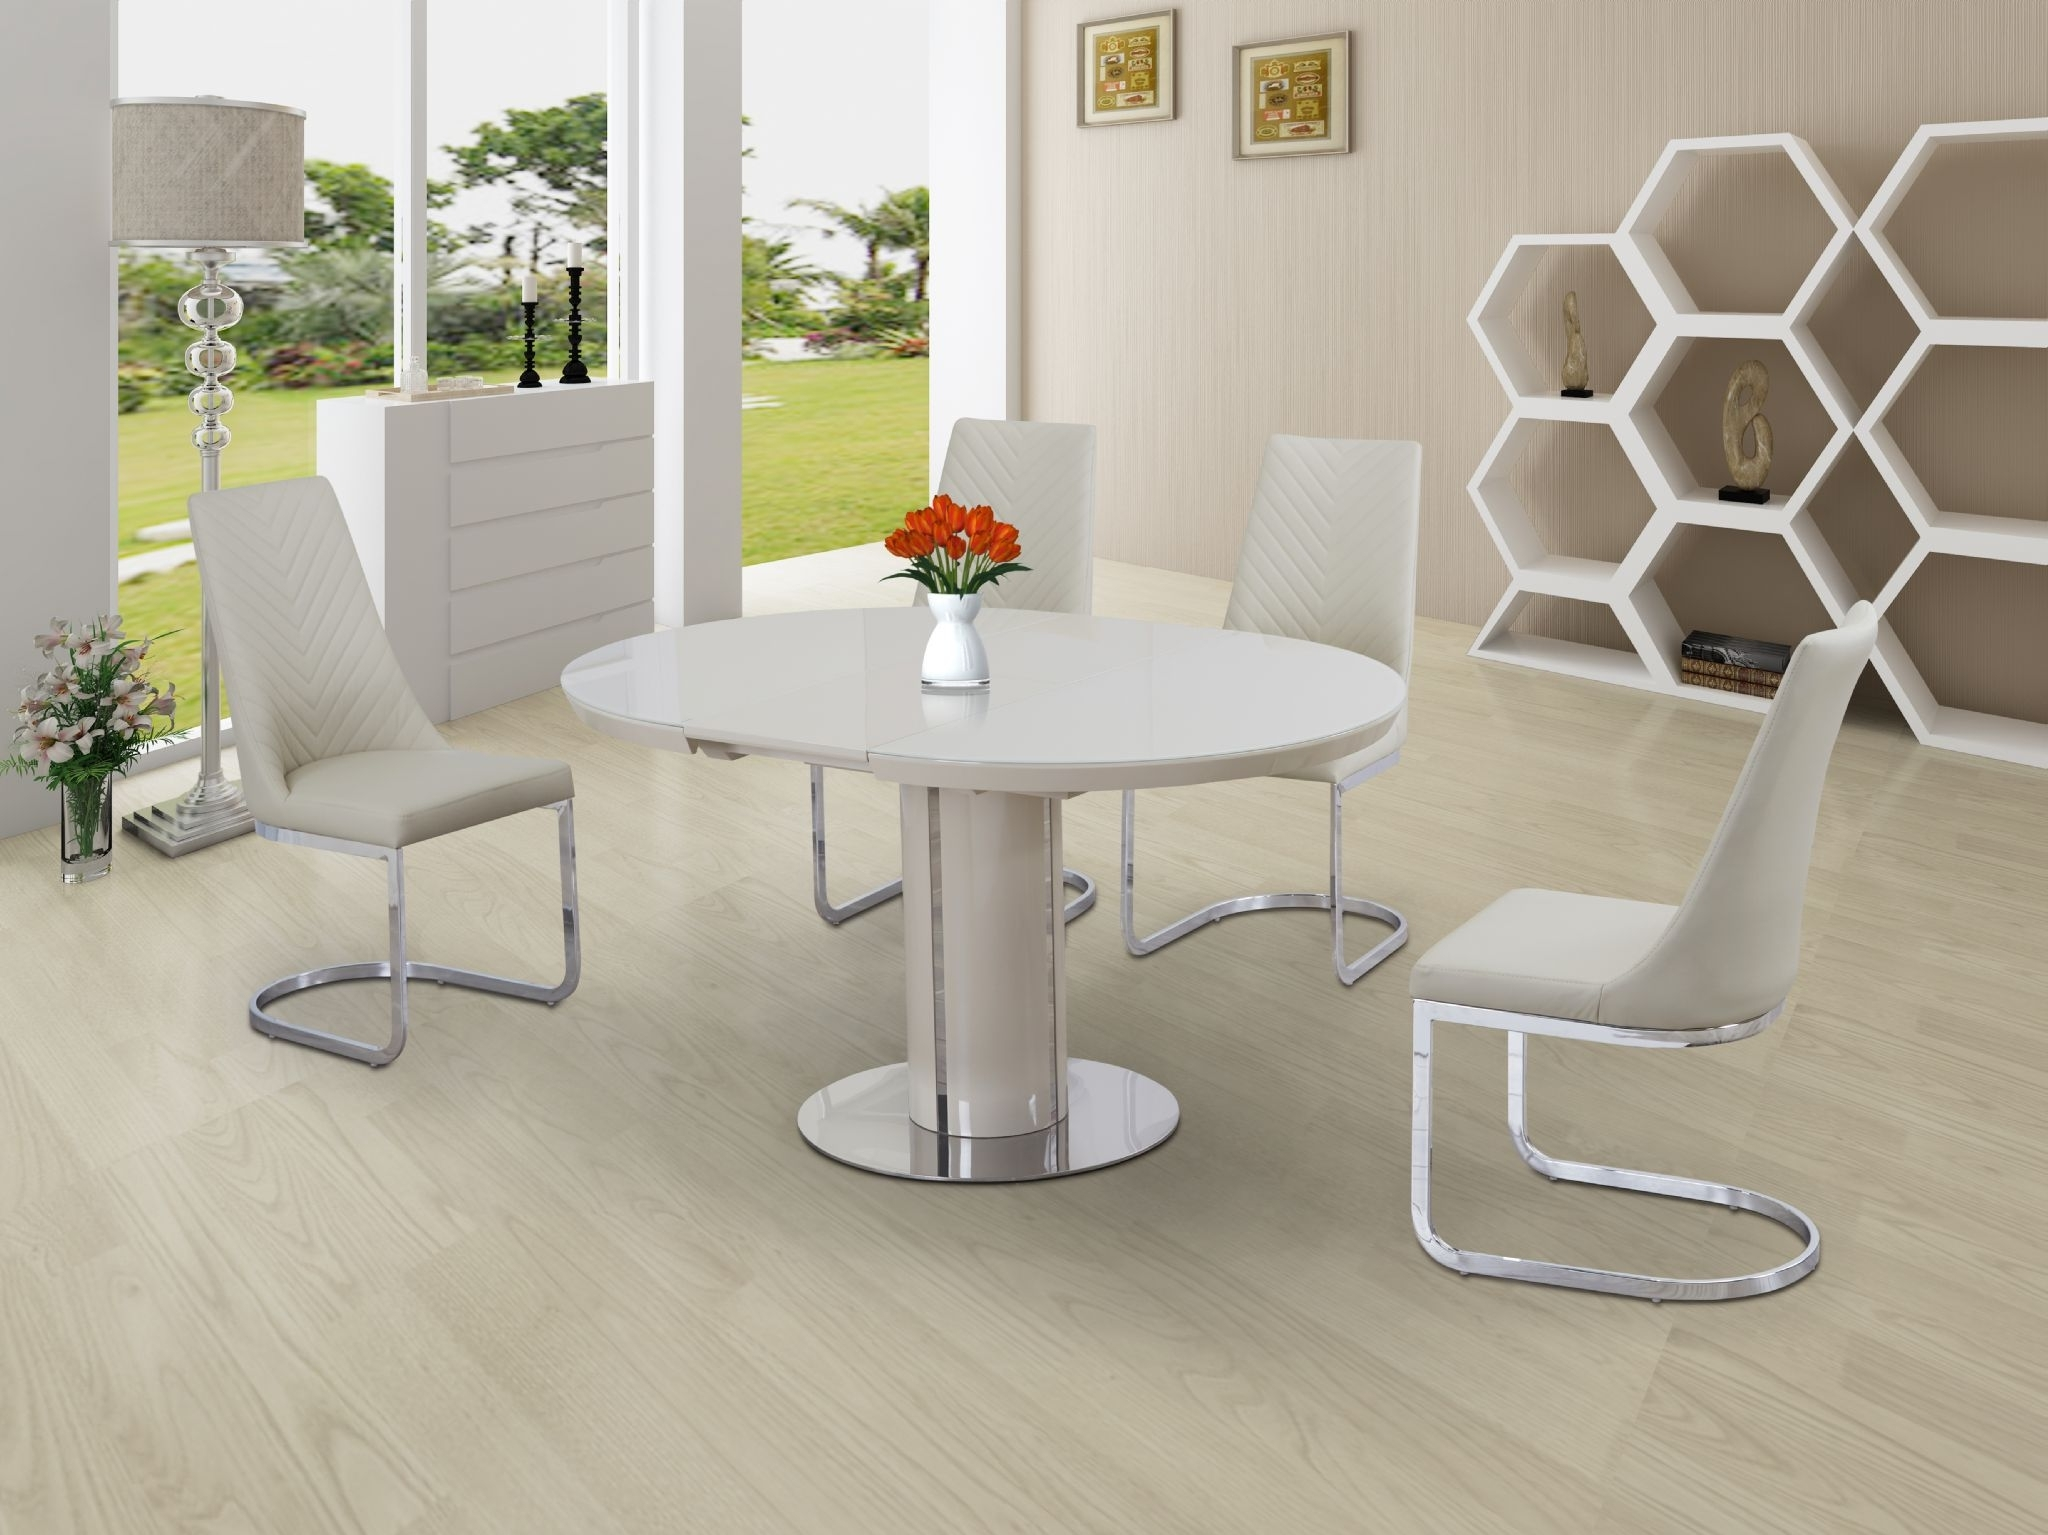 Buy Small Round Extendable Dining Table Today For Current Round Extending Dining Tables Sets (Gallery 2 of 25)